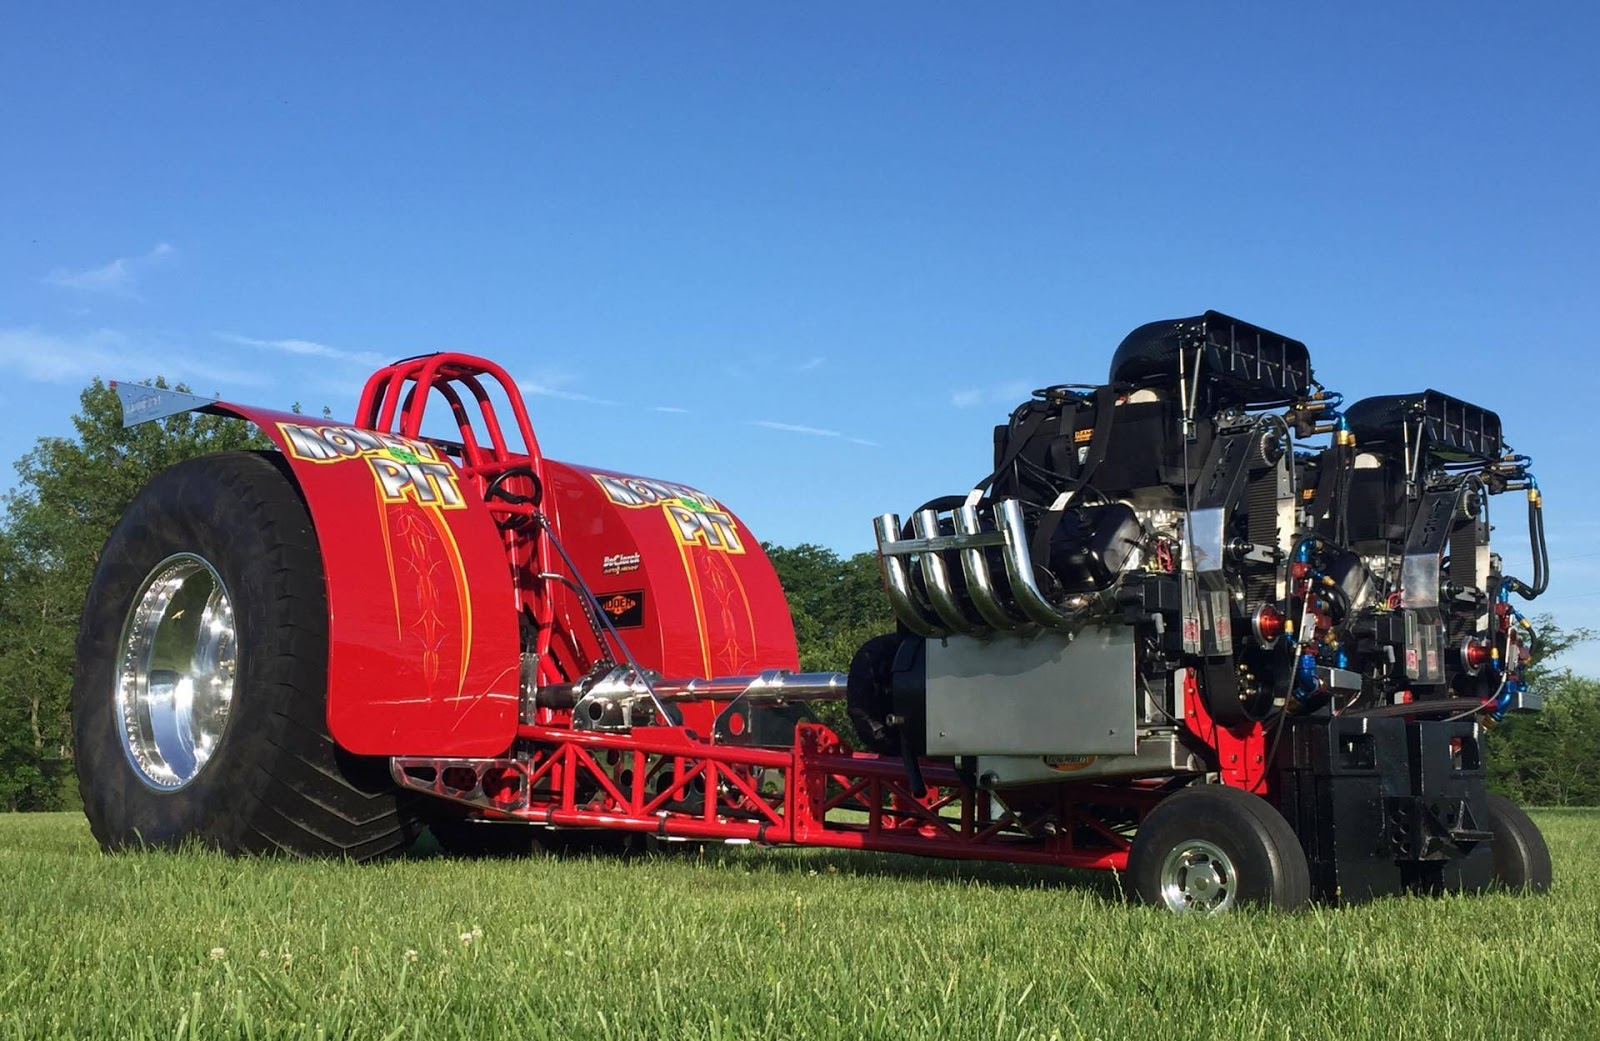 Tractor pulling news pullingworld from v12 to v8 money pit from stonington illinois in the usa the money pit pulling team and corzine motorsports have joined together to bring a new entry to the ntpa light sciox Images